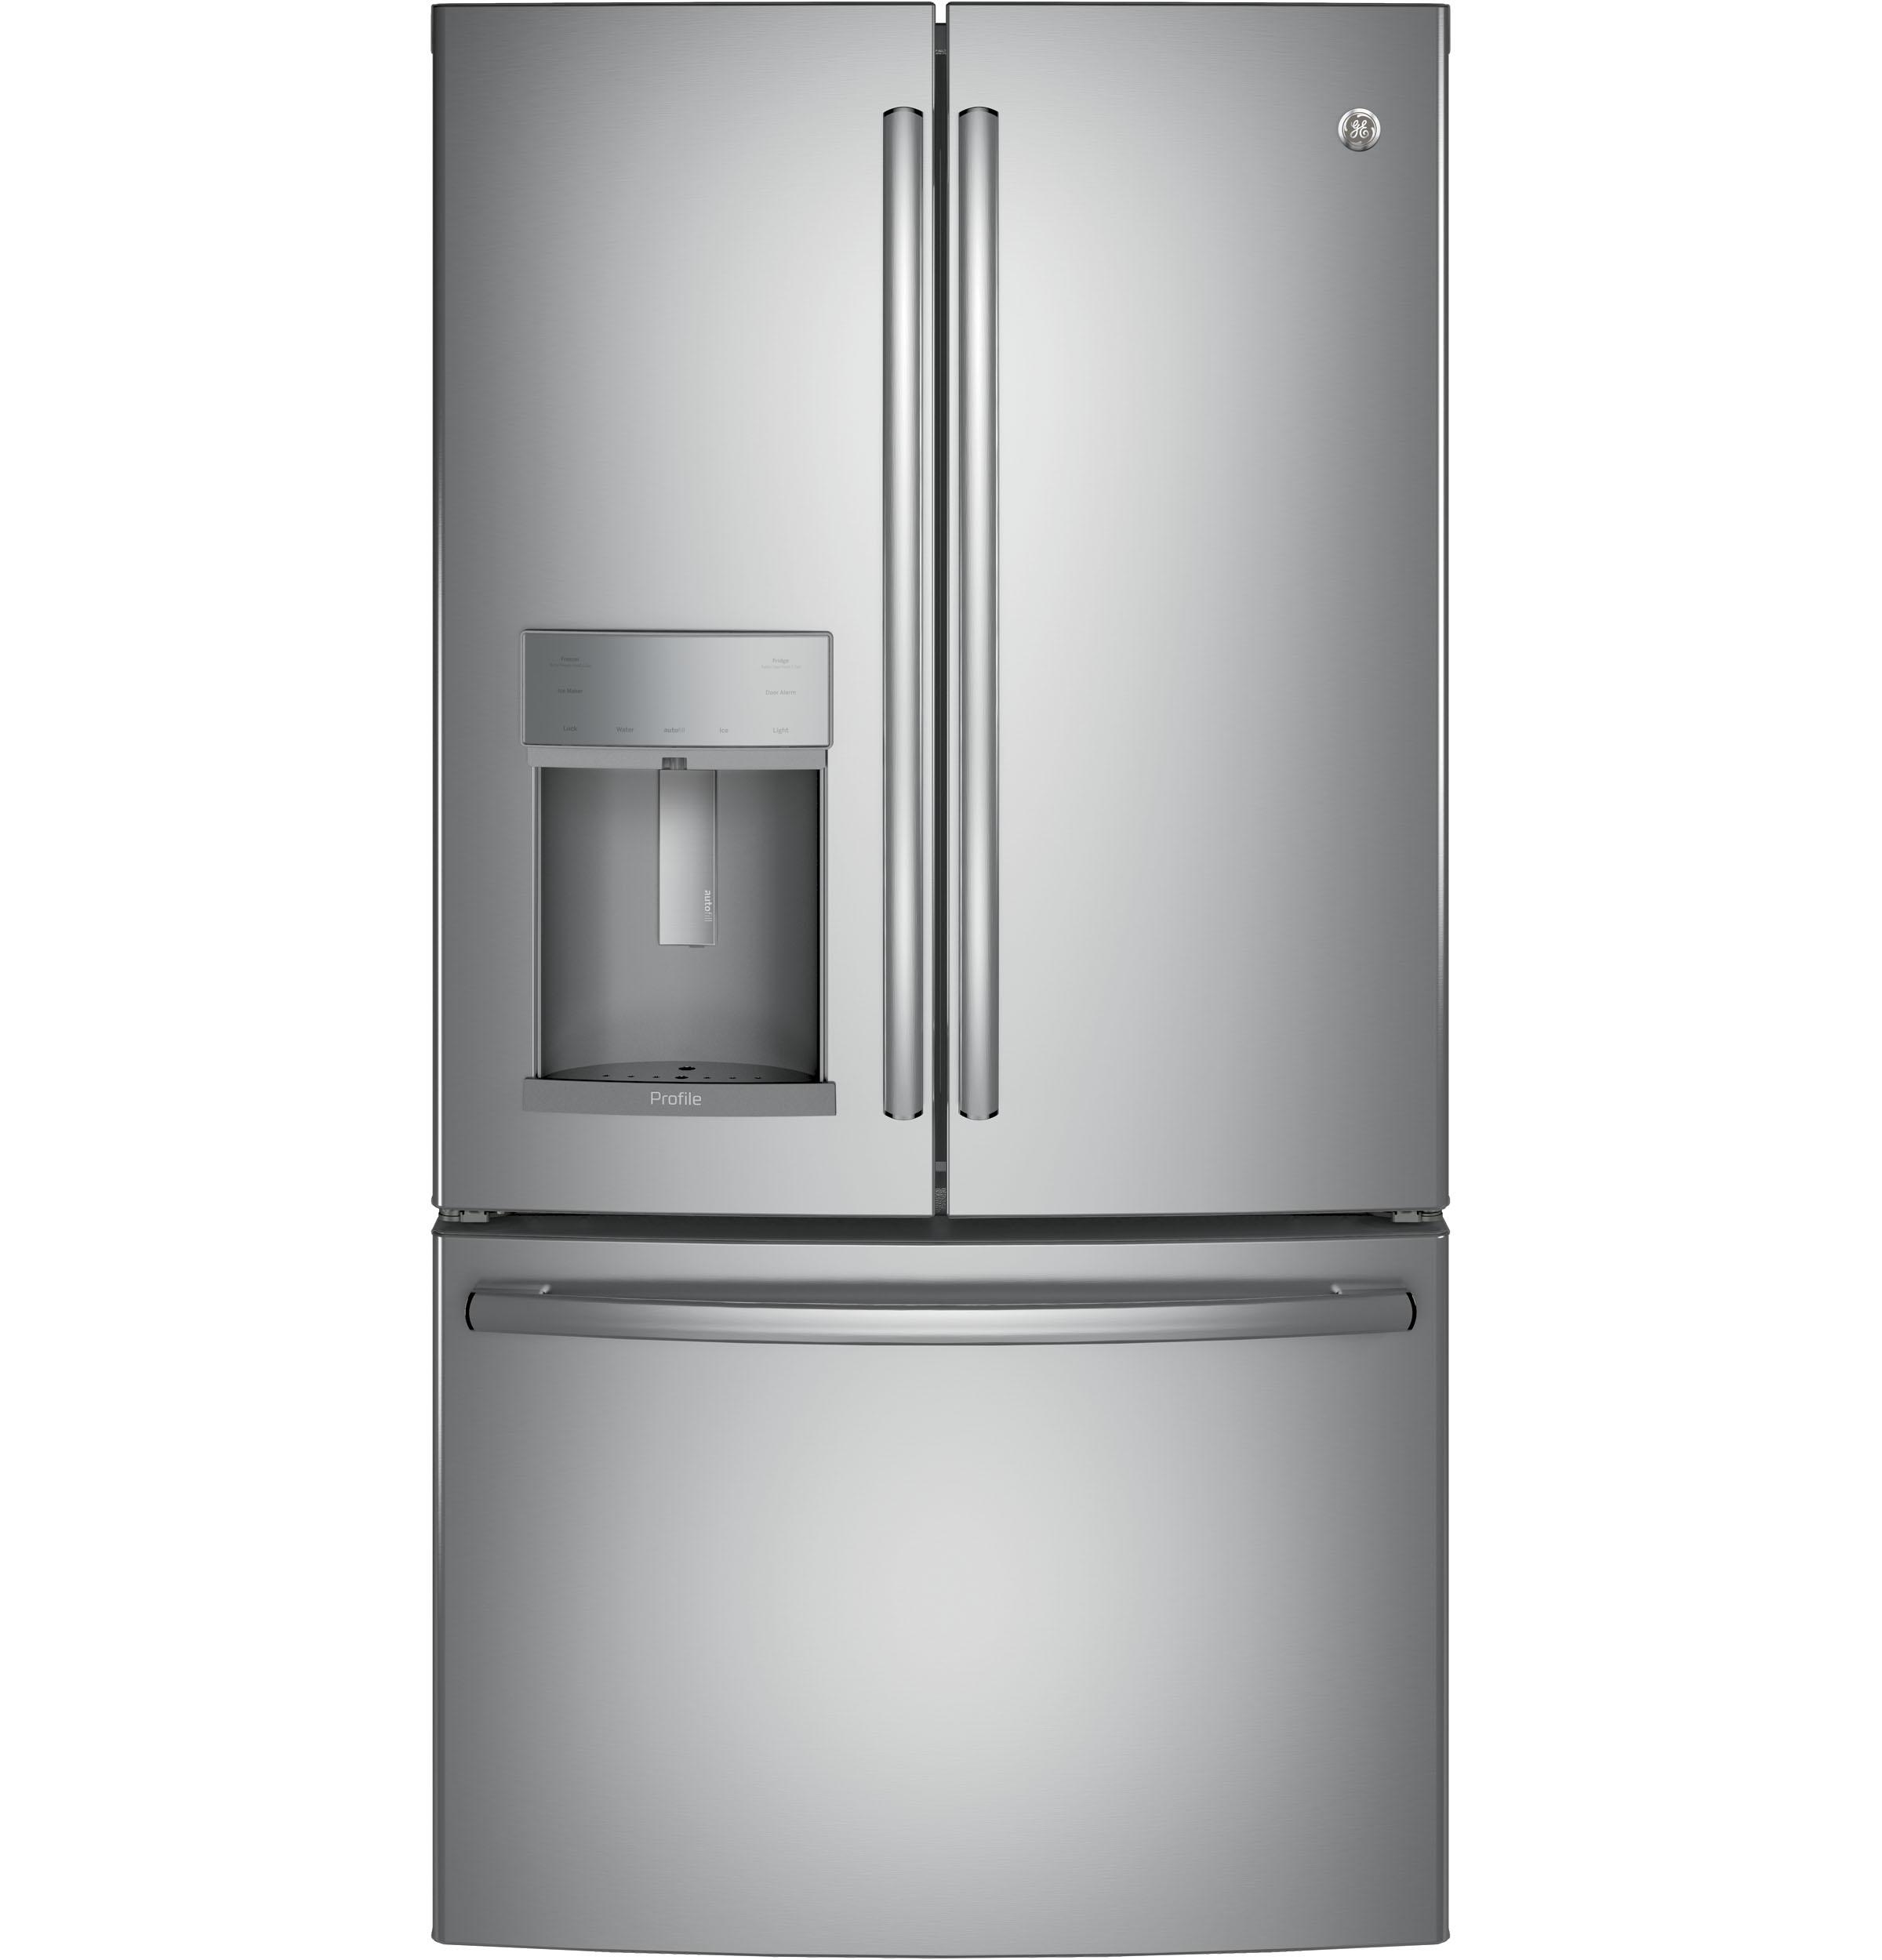 GE Profile(TM) Series ENERGY STAR(R) 27.8 Cu. Ft. French-Door Refrigerator with Hands-Free AutoFill